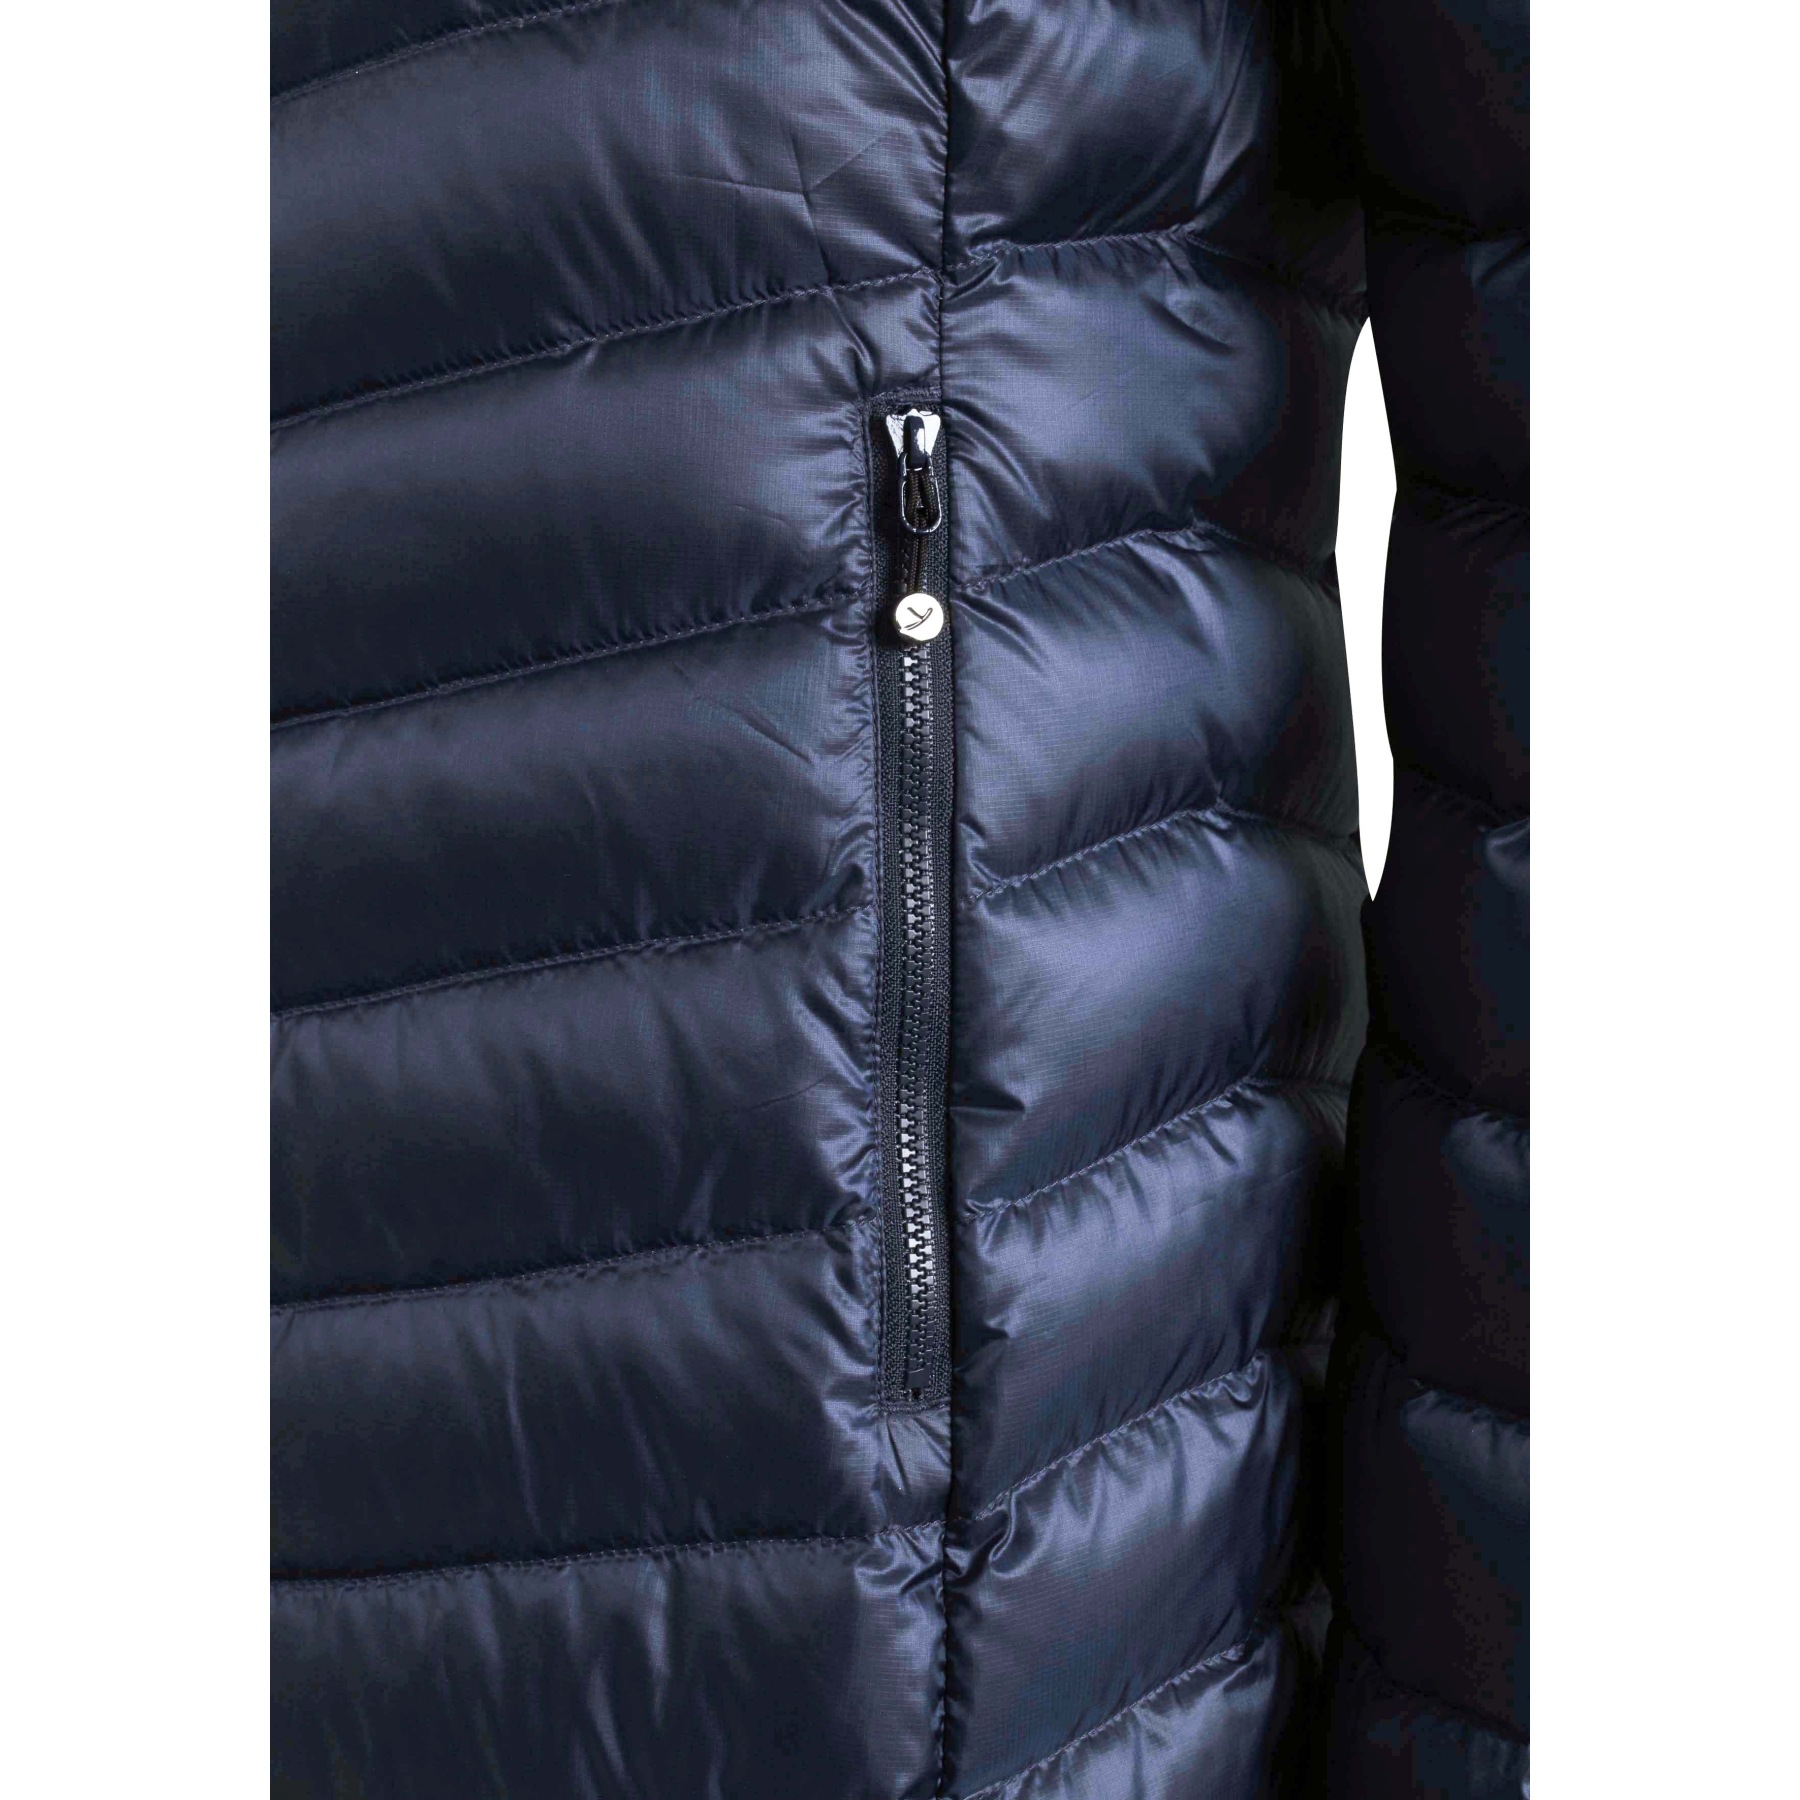 Image of Y by Nordisk Pearth Women's Down Coat - mood indigo